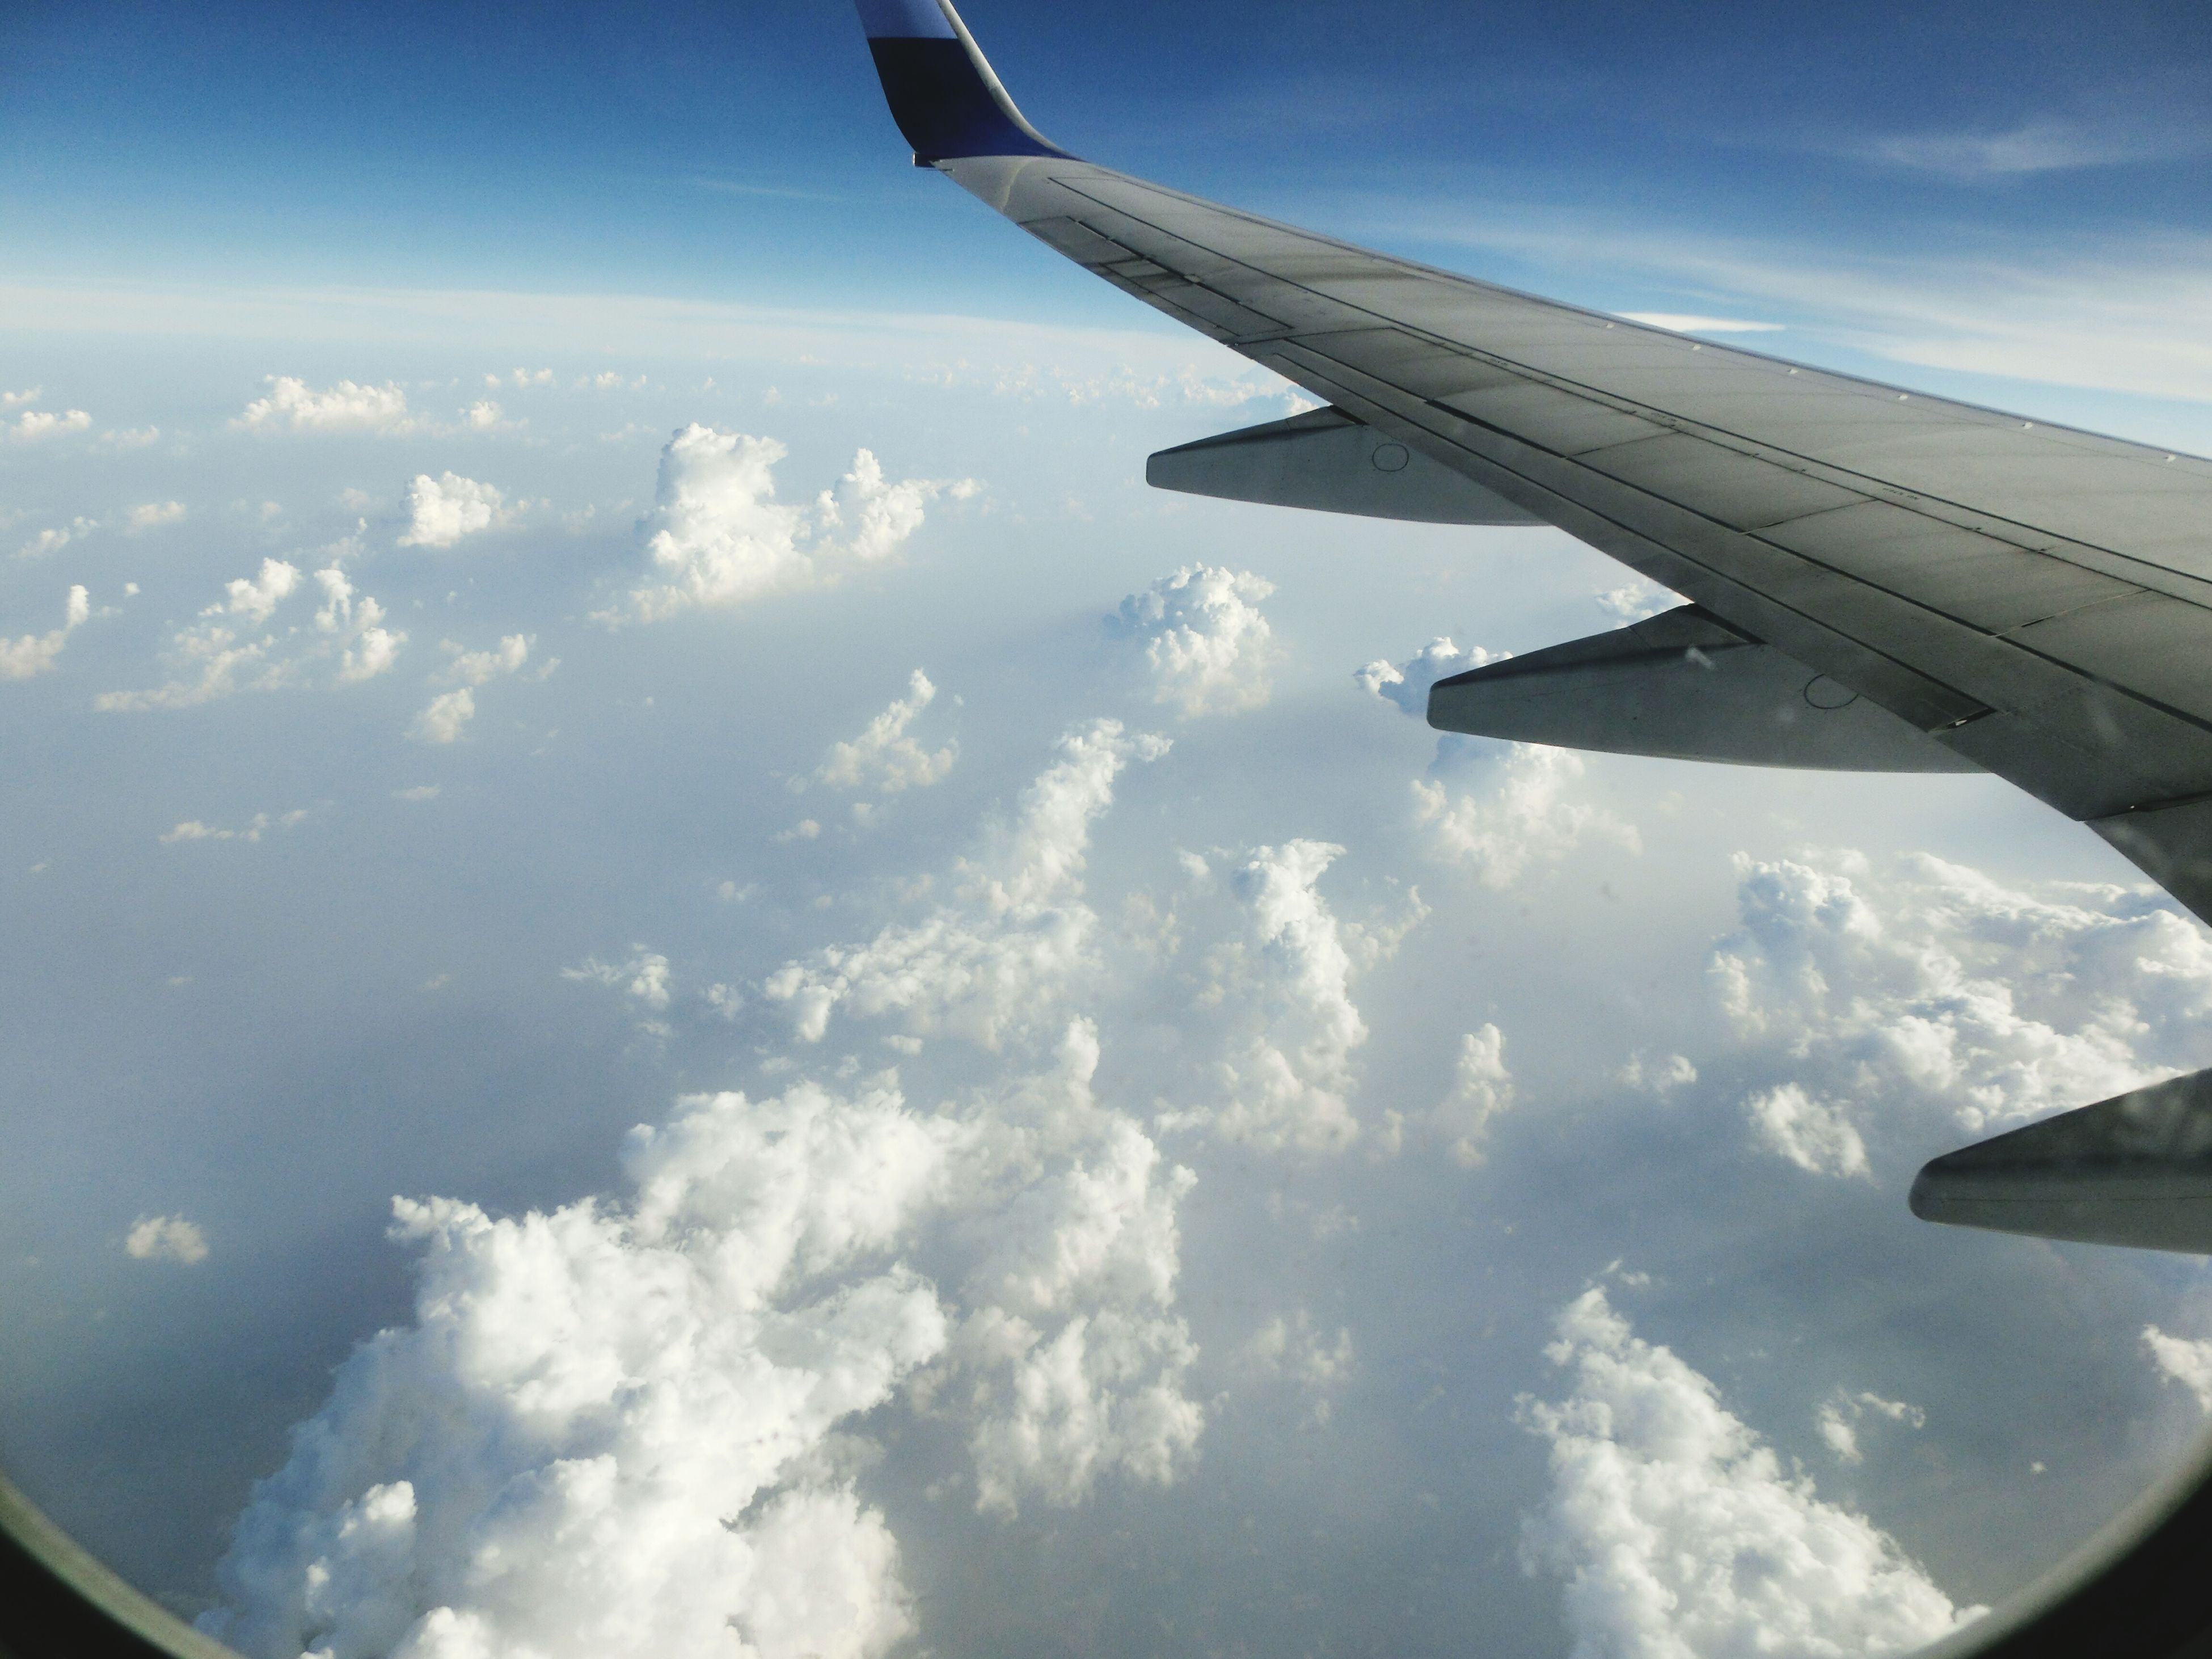 airplane, aircraft wing, air vehicle, flying, transportation, mode of transport, part of, sky, cropped, aerial view, mid-air, travel, journey, cloud - sky, public transportation, on the move, scenics, airplane wing, beauty in nature, aeroplane